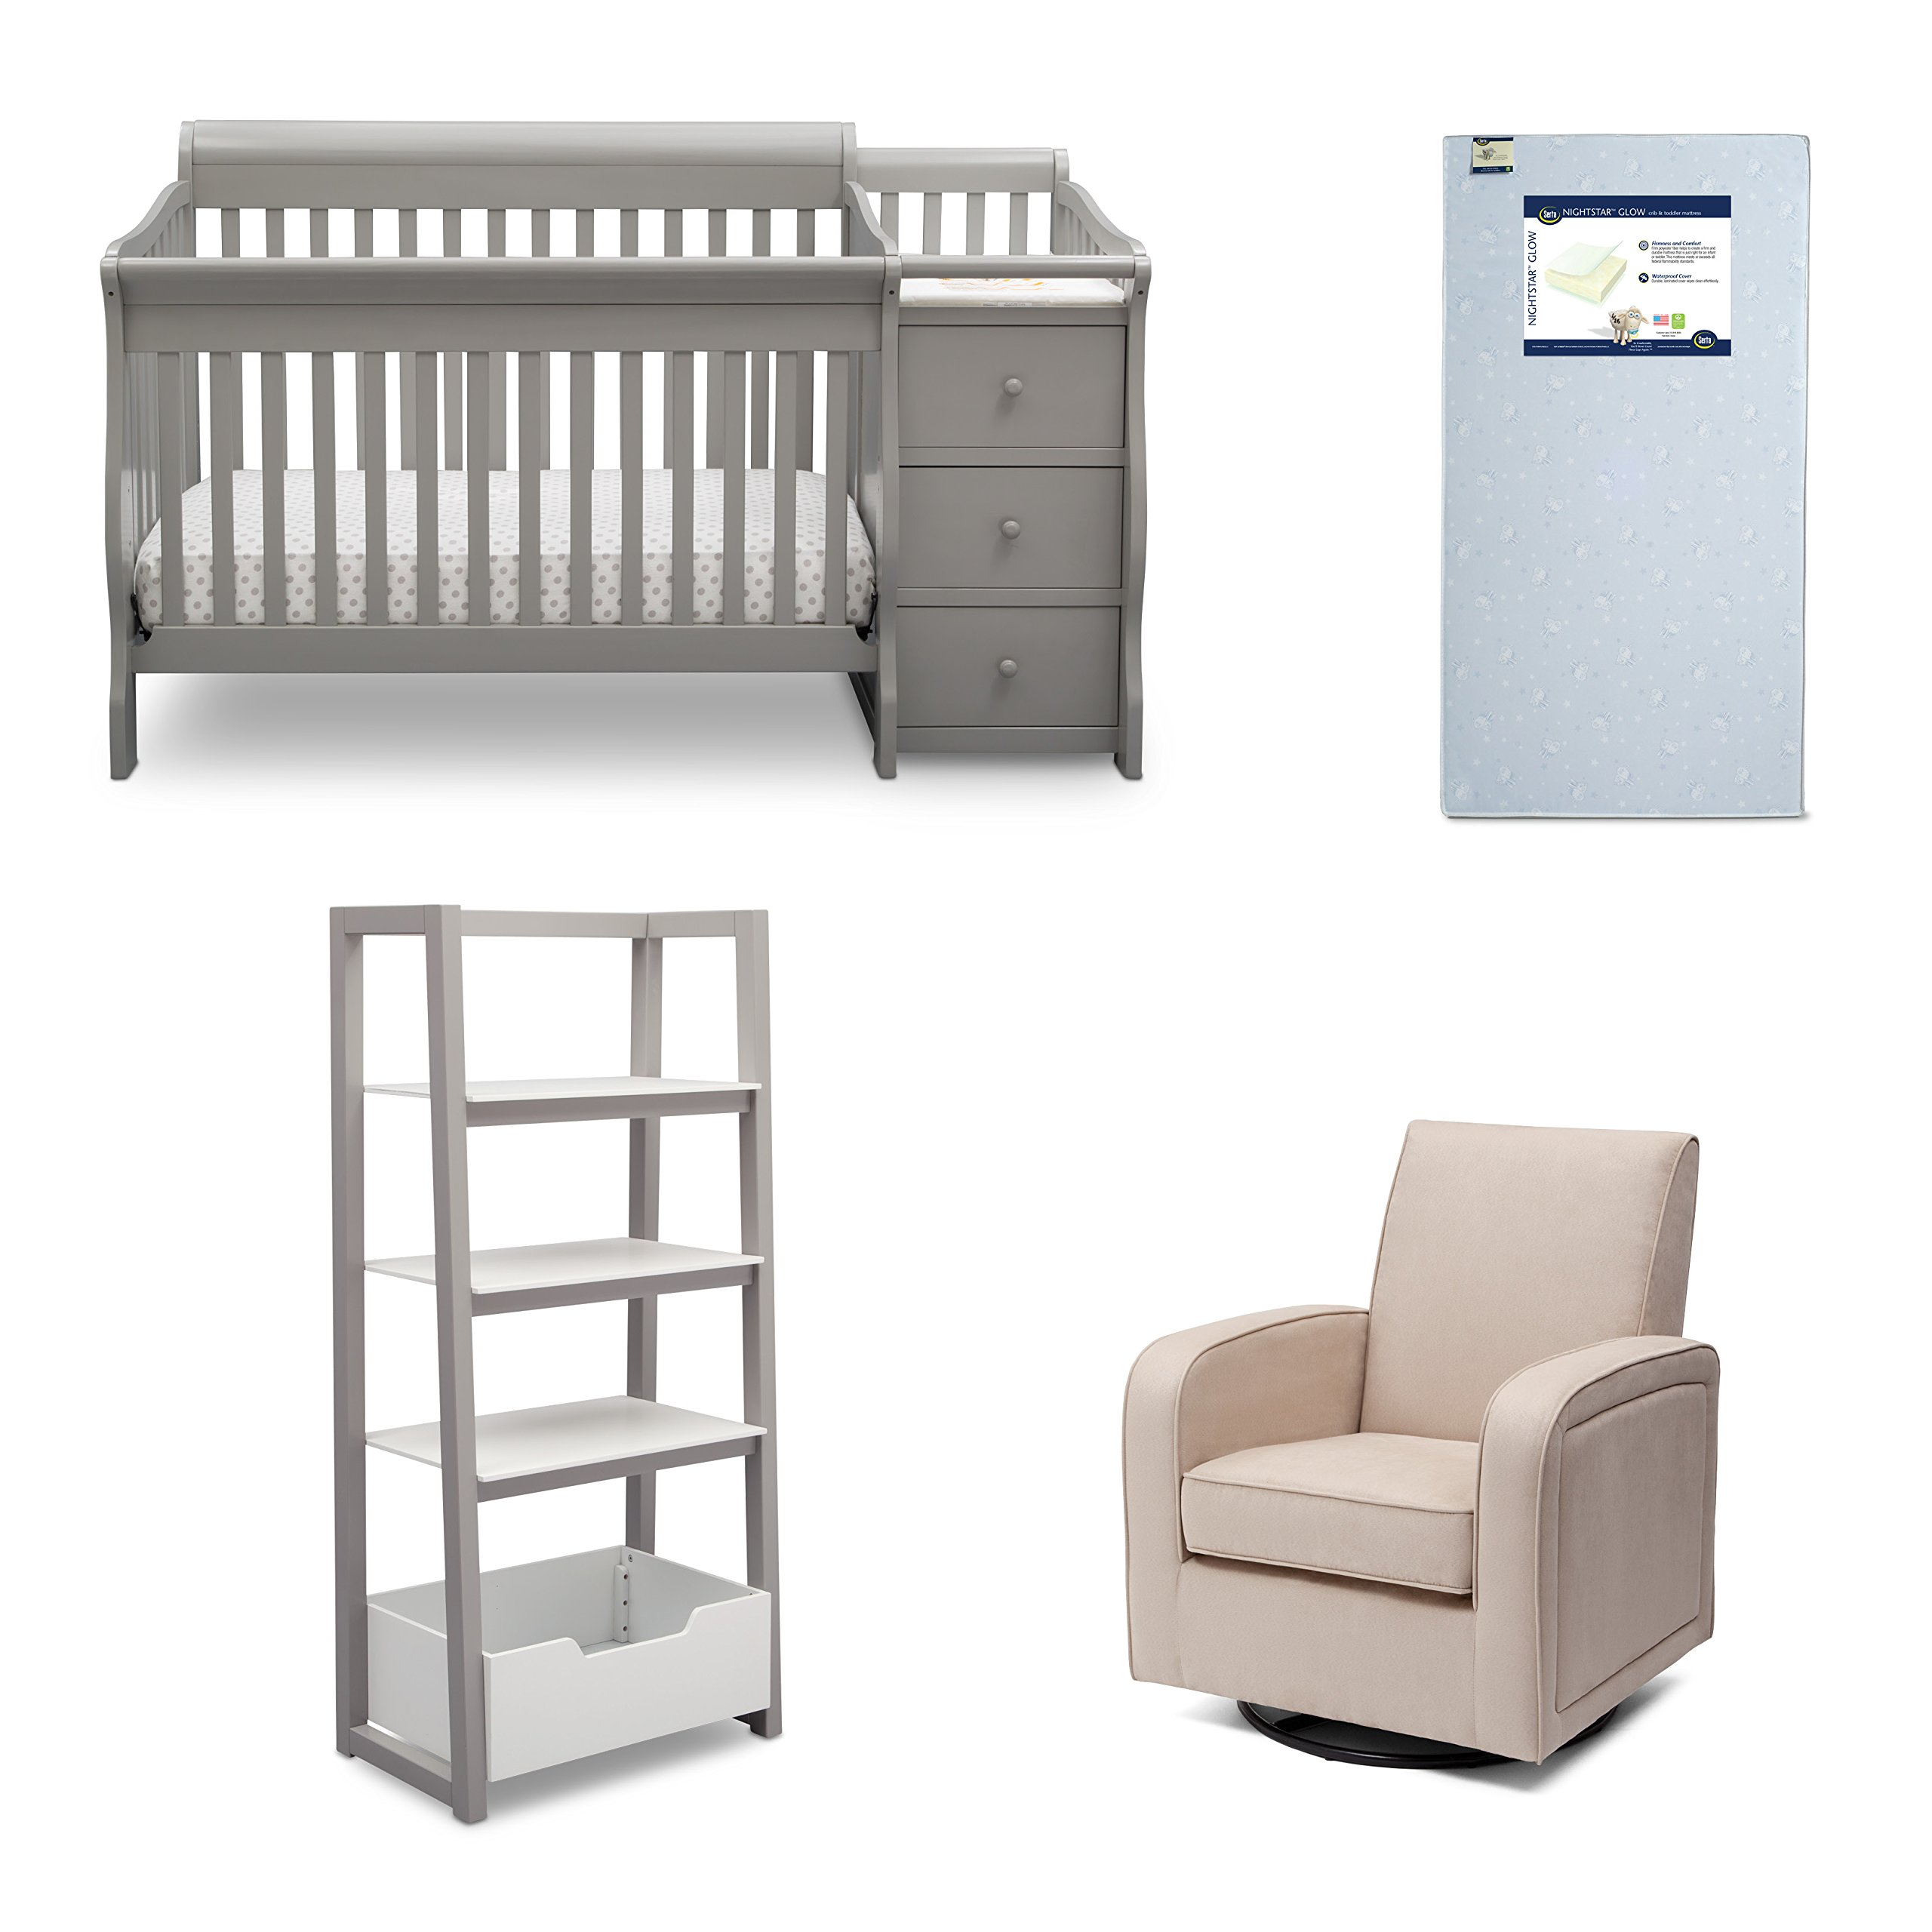 Delta Children Princeton Junction 4-Piece Nursery Furniture Set (Convertible Crib N Changer, Ladder Shelf, Glider, Crib Mattress), Grey